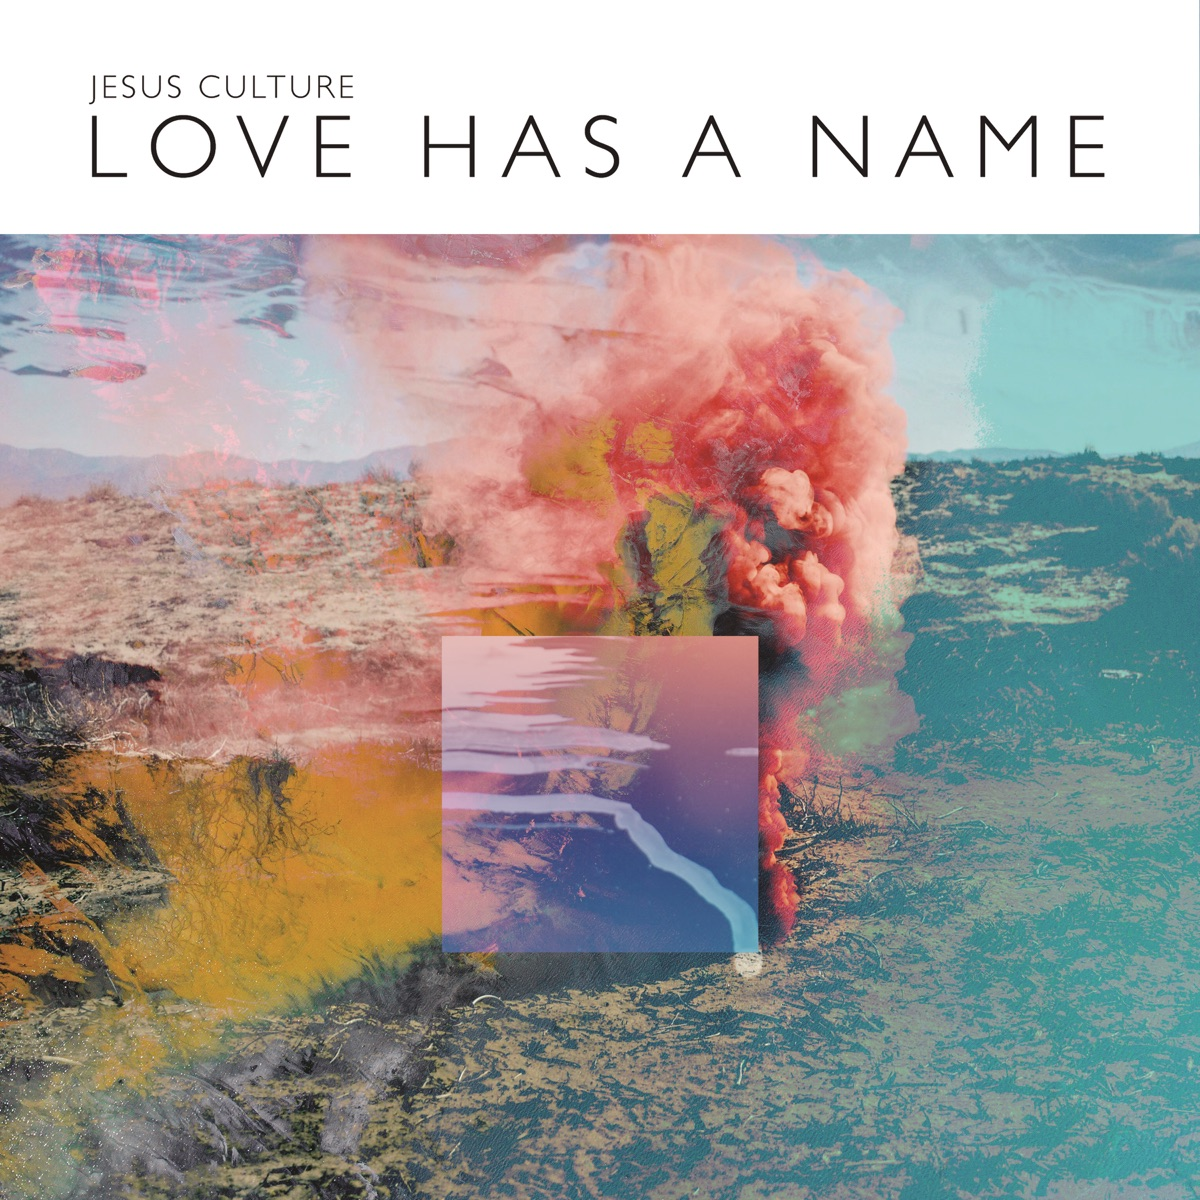 Love Has a Name Live Jesus Culture CD cover